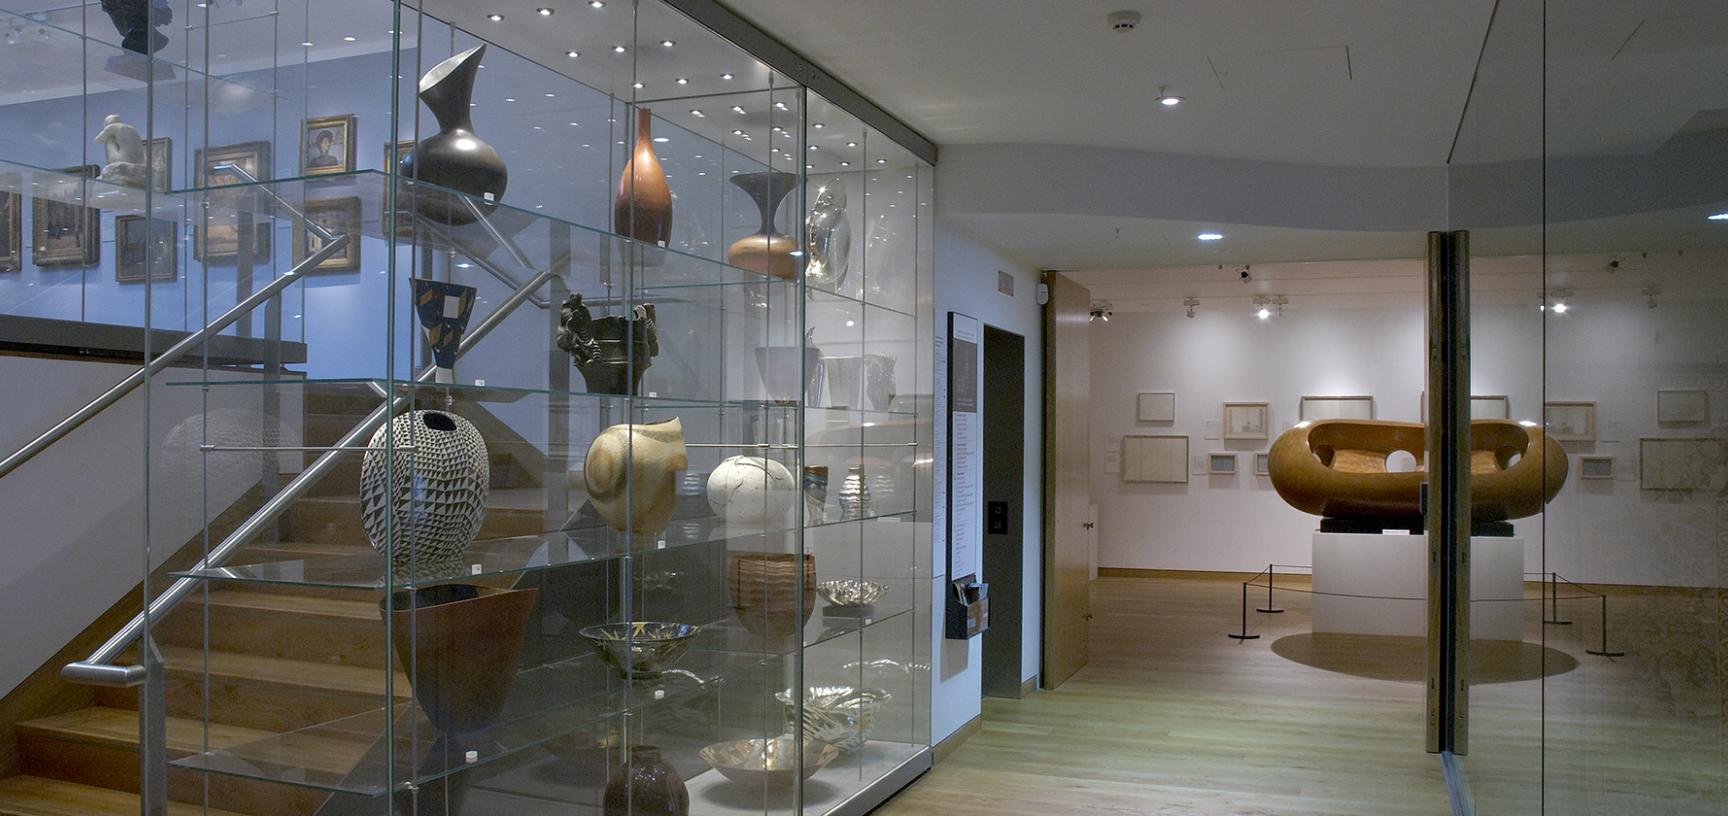 The Modern Art Gallery at the Ashmolean Museum